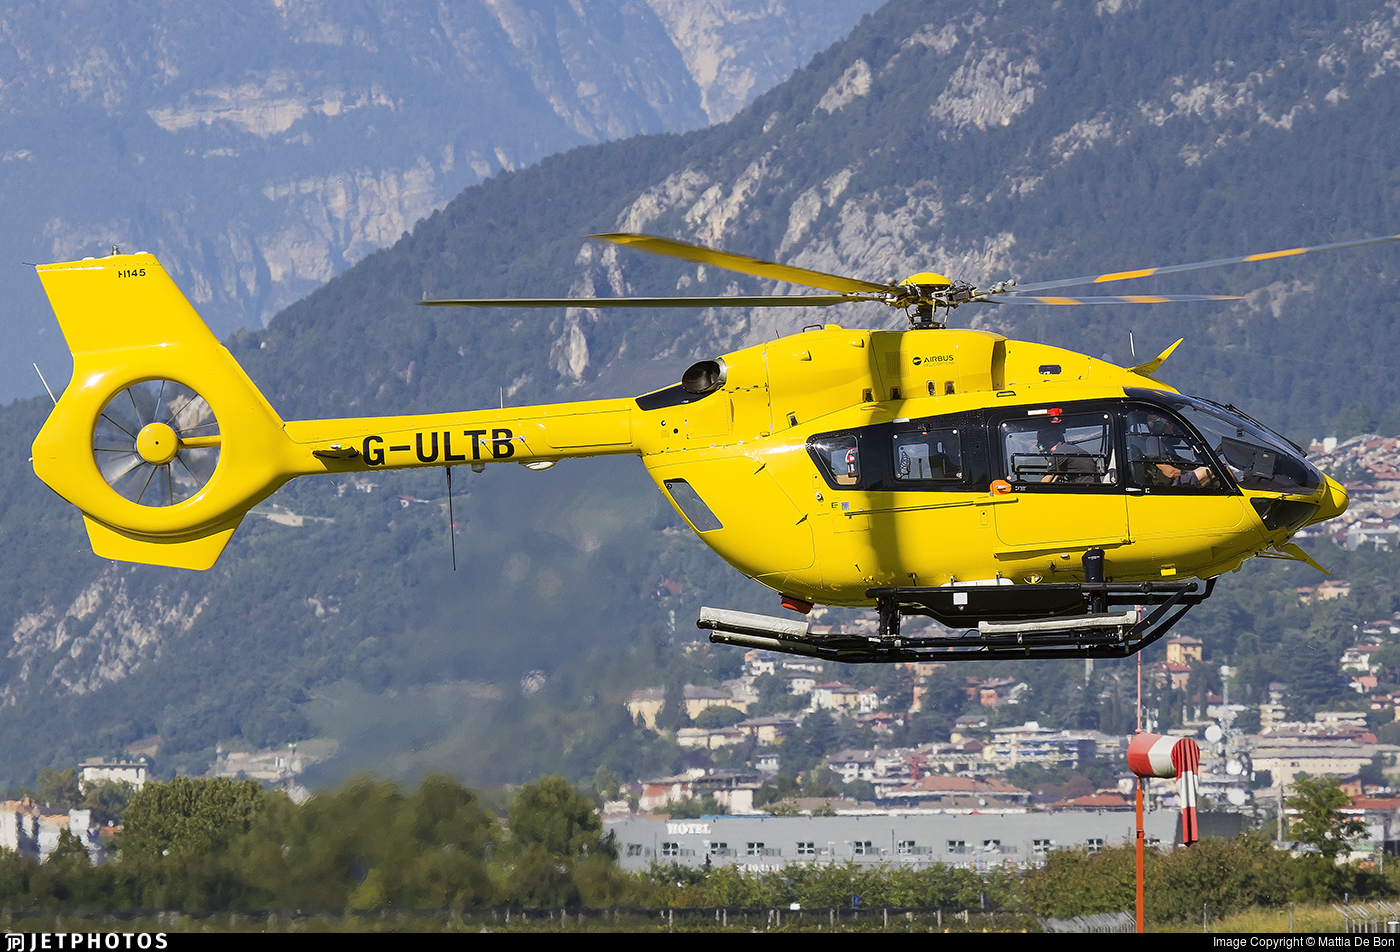 G-ULTB - Airbus Helicopters H145 - Starspeed